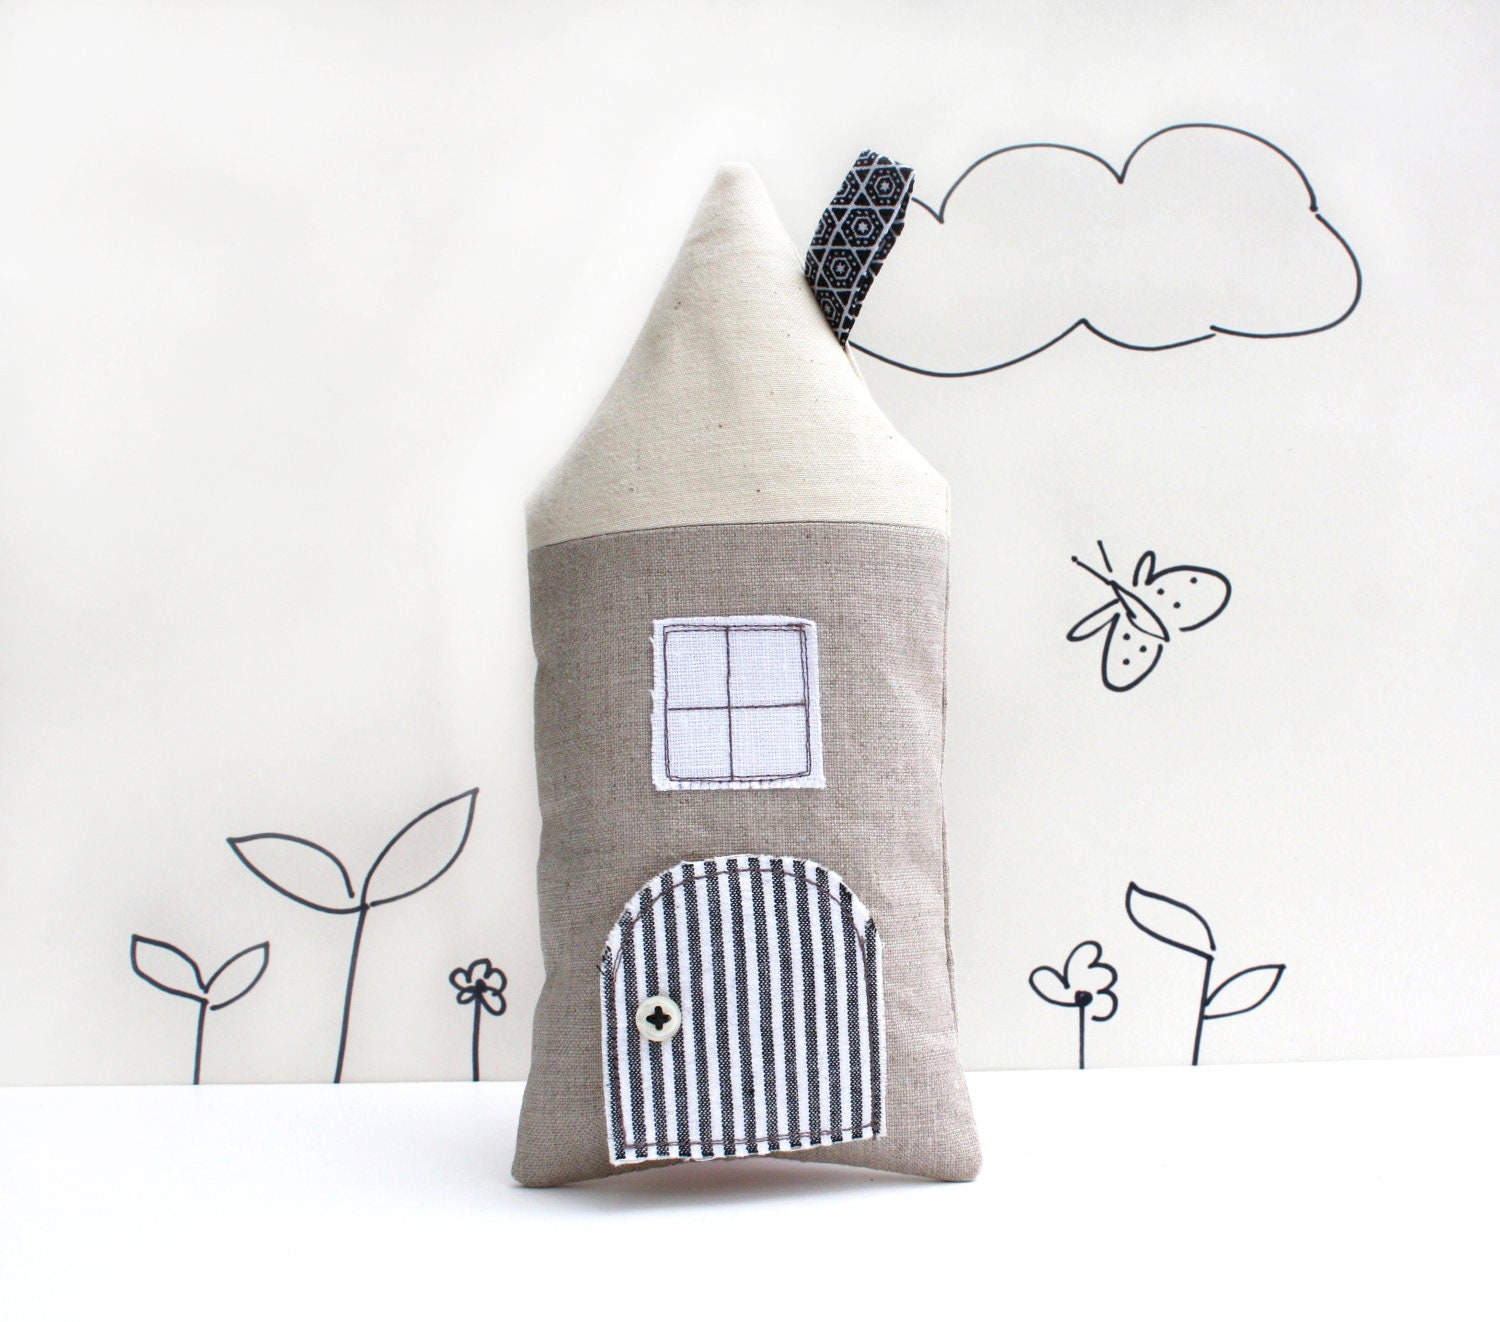 Tooth Fairy Pillow, Cottage, Neutral,Boys, Girls, Children, Toy, Open The Door, Stuffed Toy, Keepsake - AppleWhite